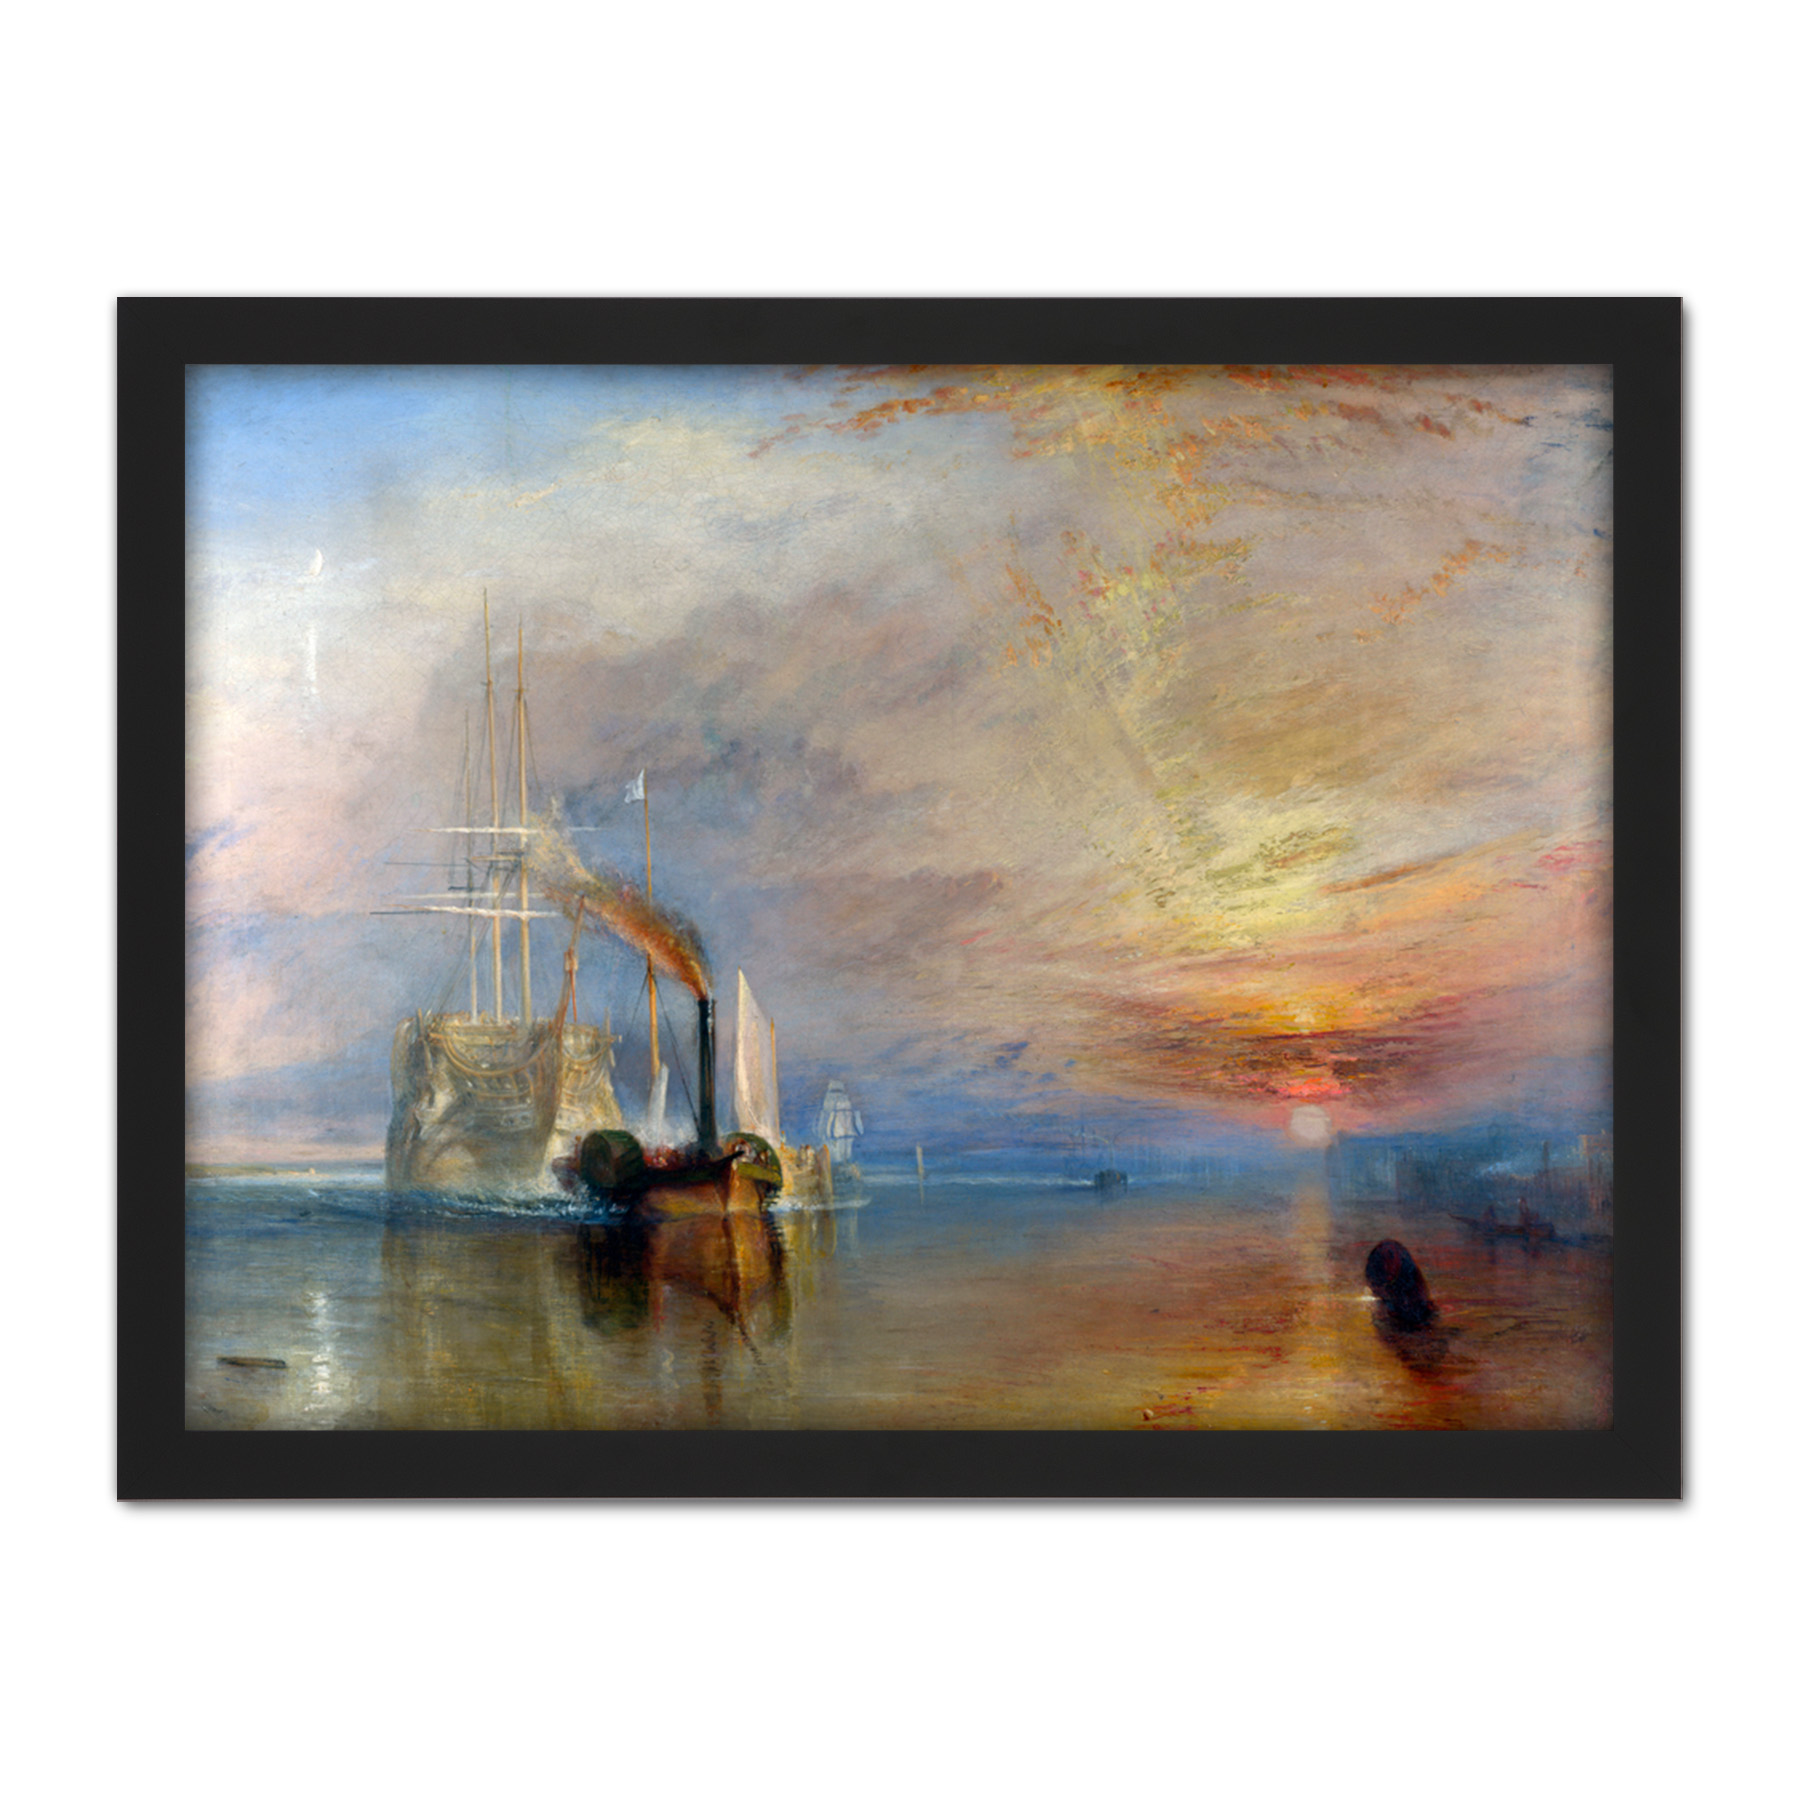 Turner-The-Fighting-Temeraire-Ship-Painting-Framed-Wall-Art-Print-18X24-In thumbnail 3